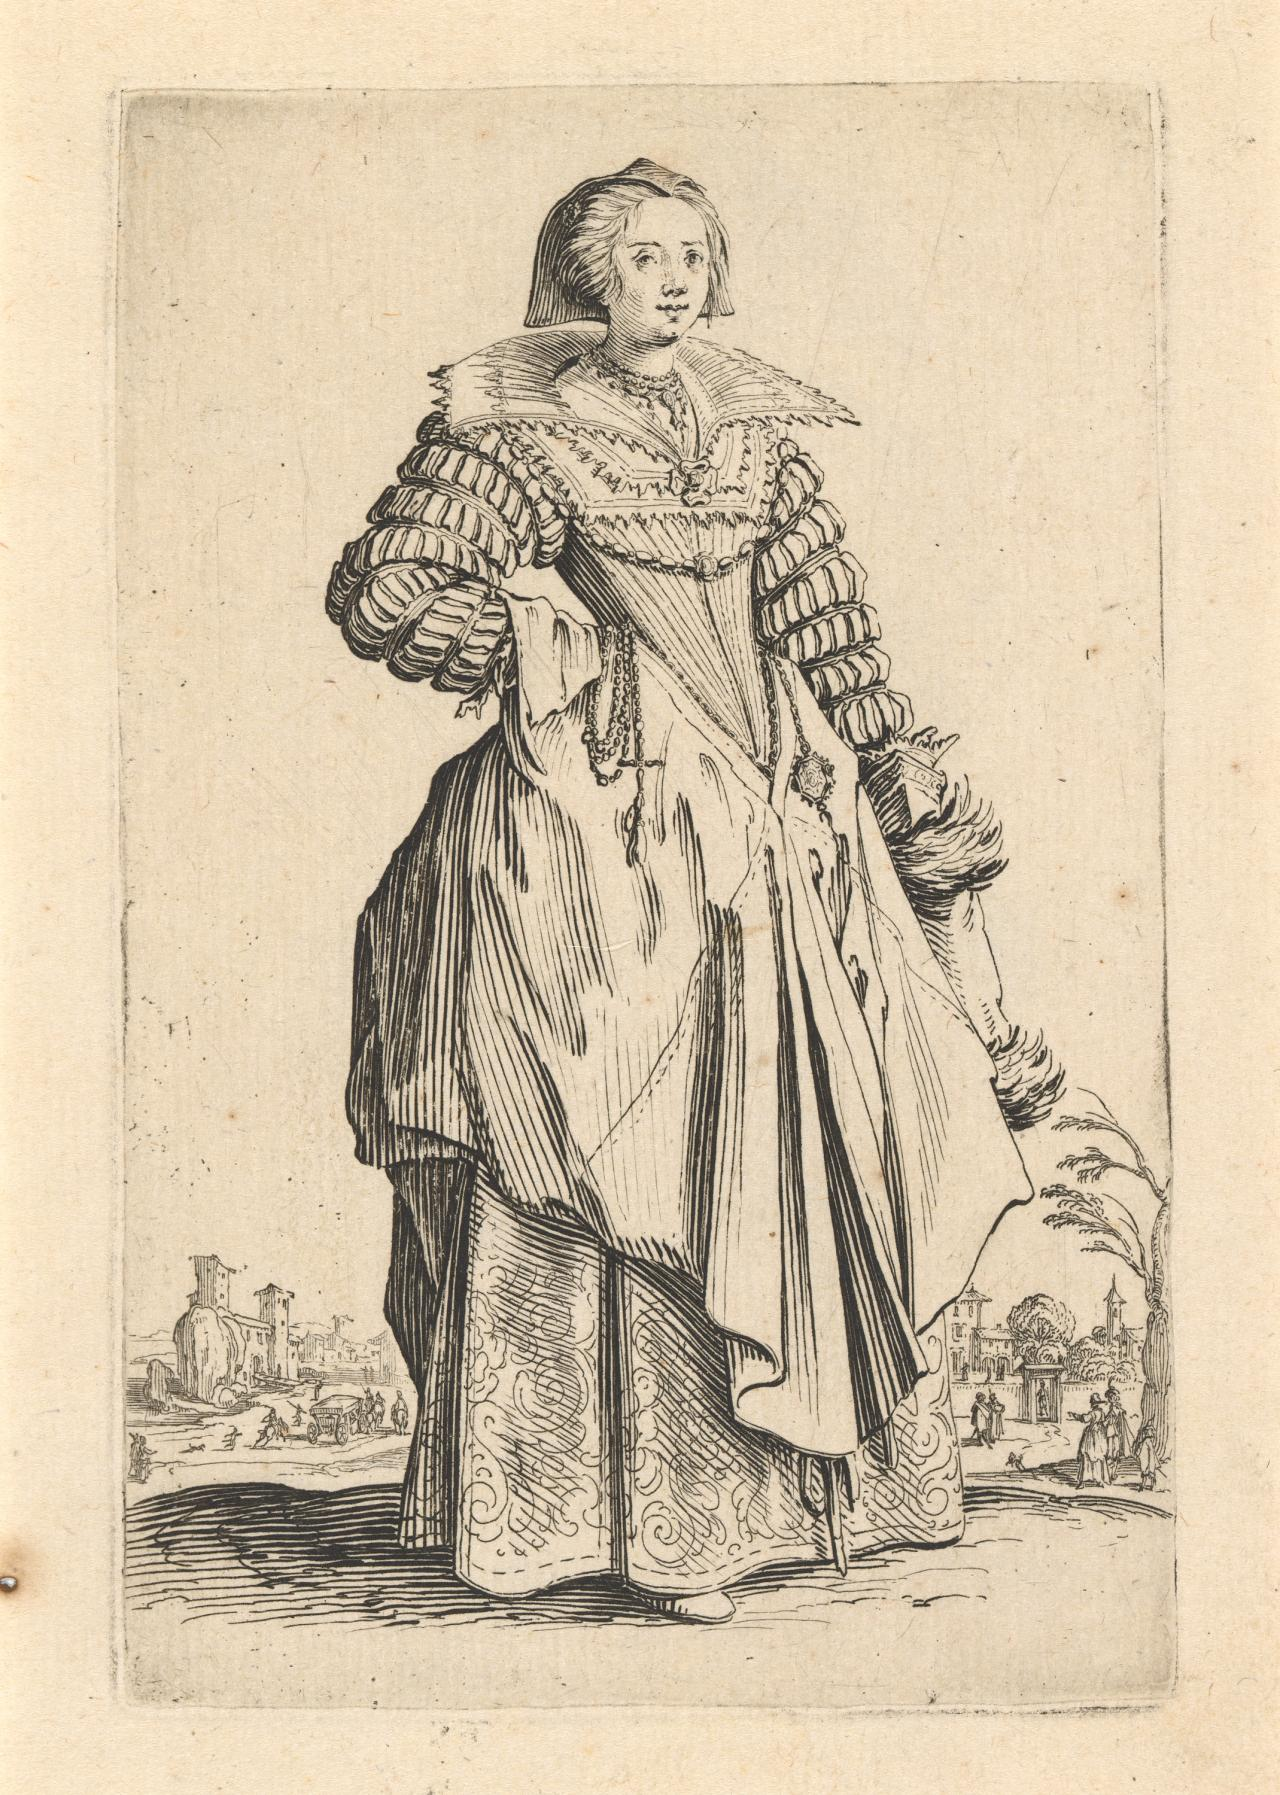 Noblewoman with a large collar and cap falling behind